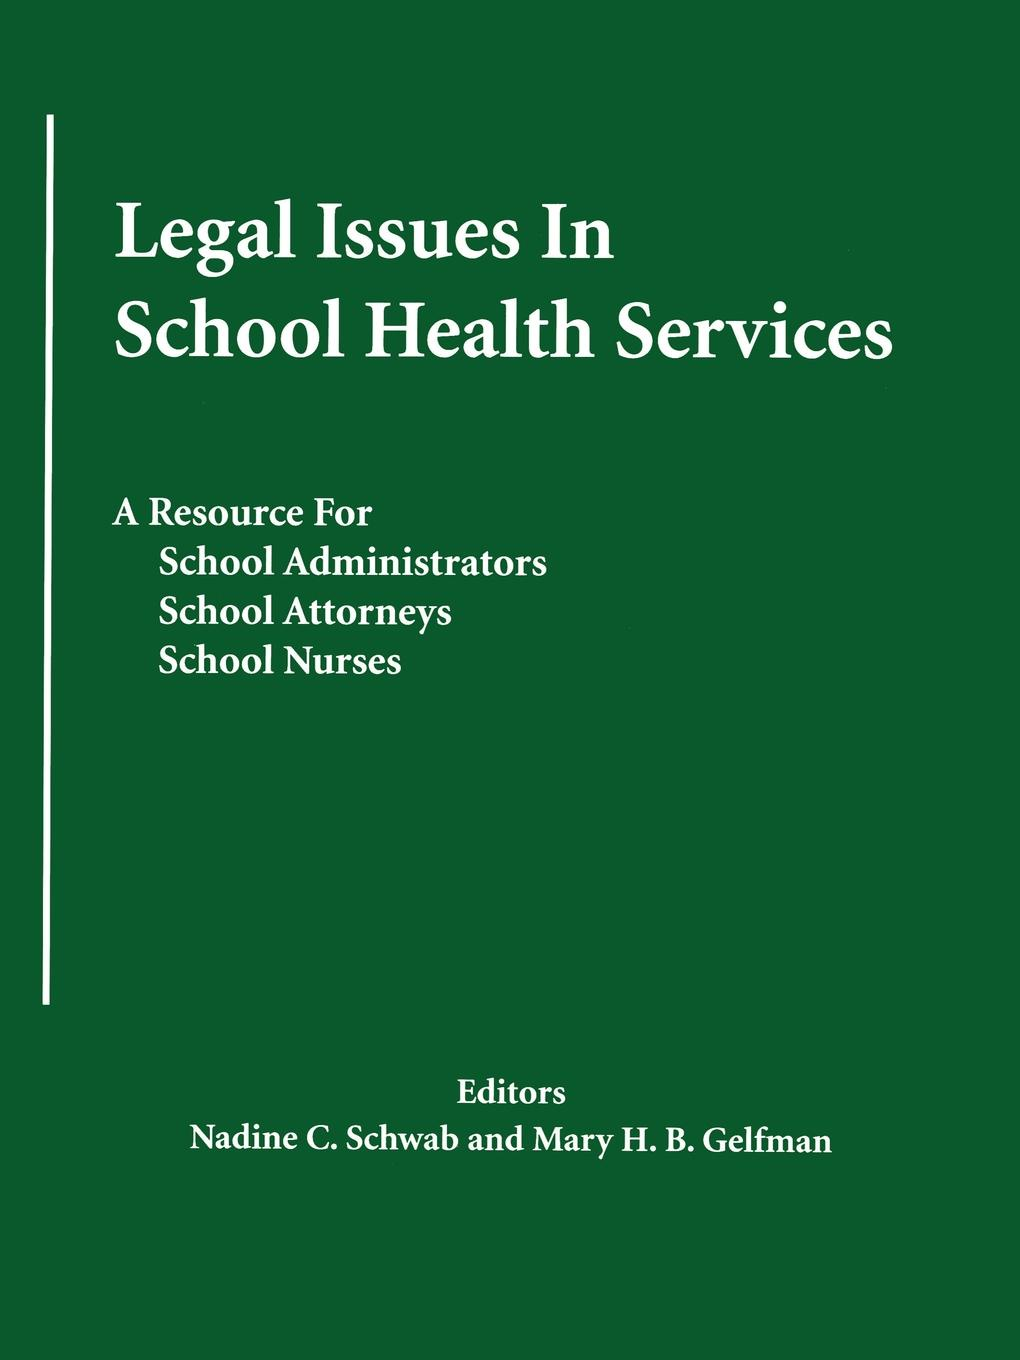 Nadine C Schwab Legal Issues In School Health Services. A Resource for School Administrators, School Attorneys, School Nurses school guidance services